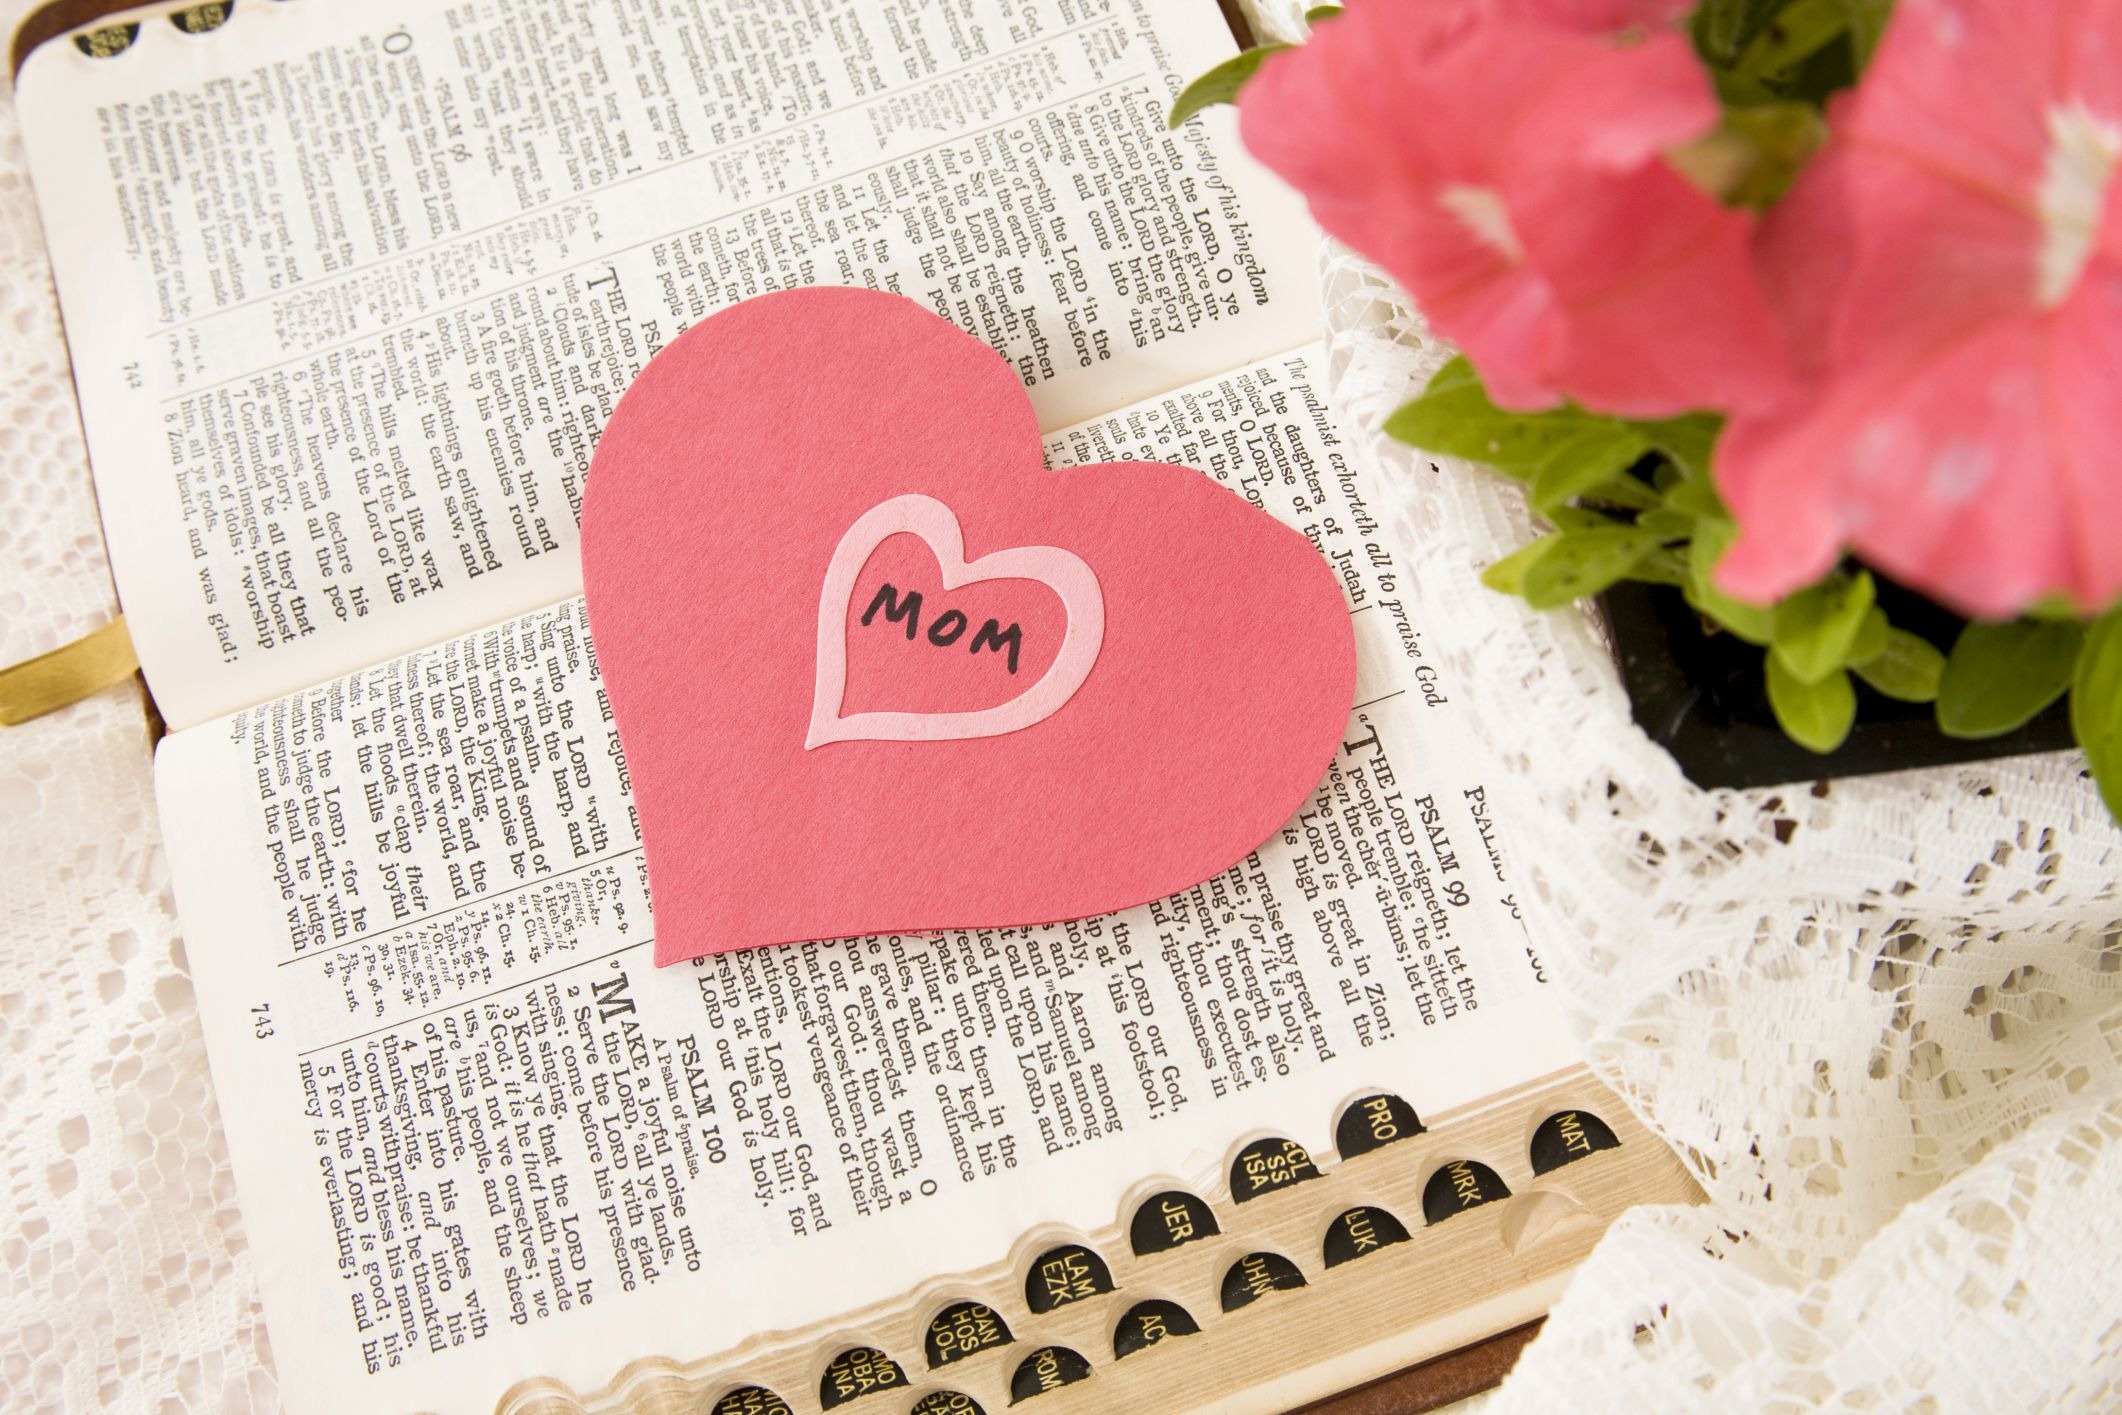 7 Inspirational Bible Verses For Our Mothers And Wives